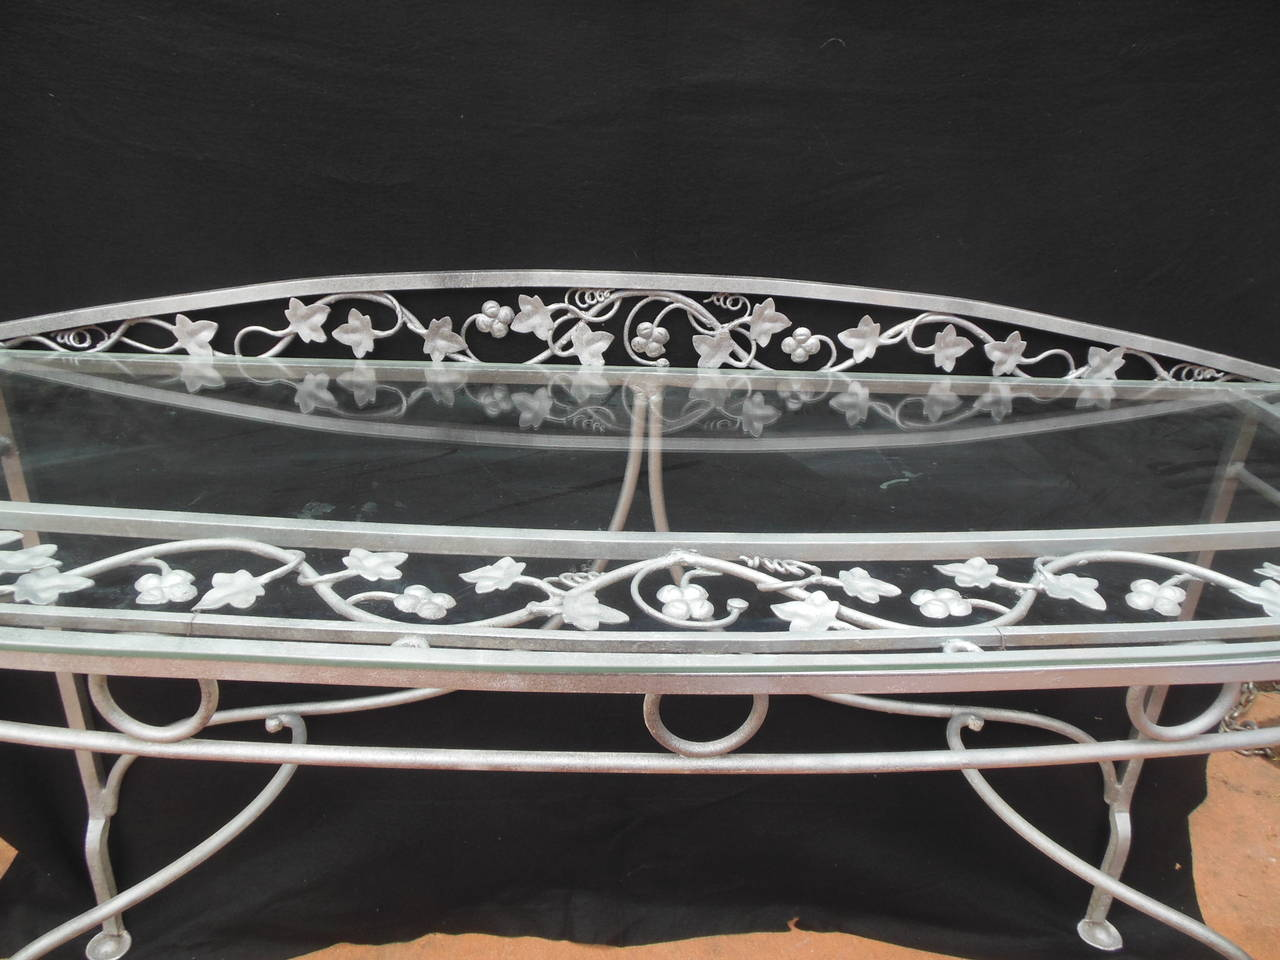 Important Vintage Wrought Iron And Glass Console Table By John Salterini.  This Exact Table Is